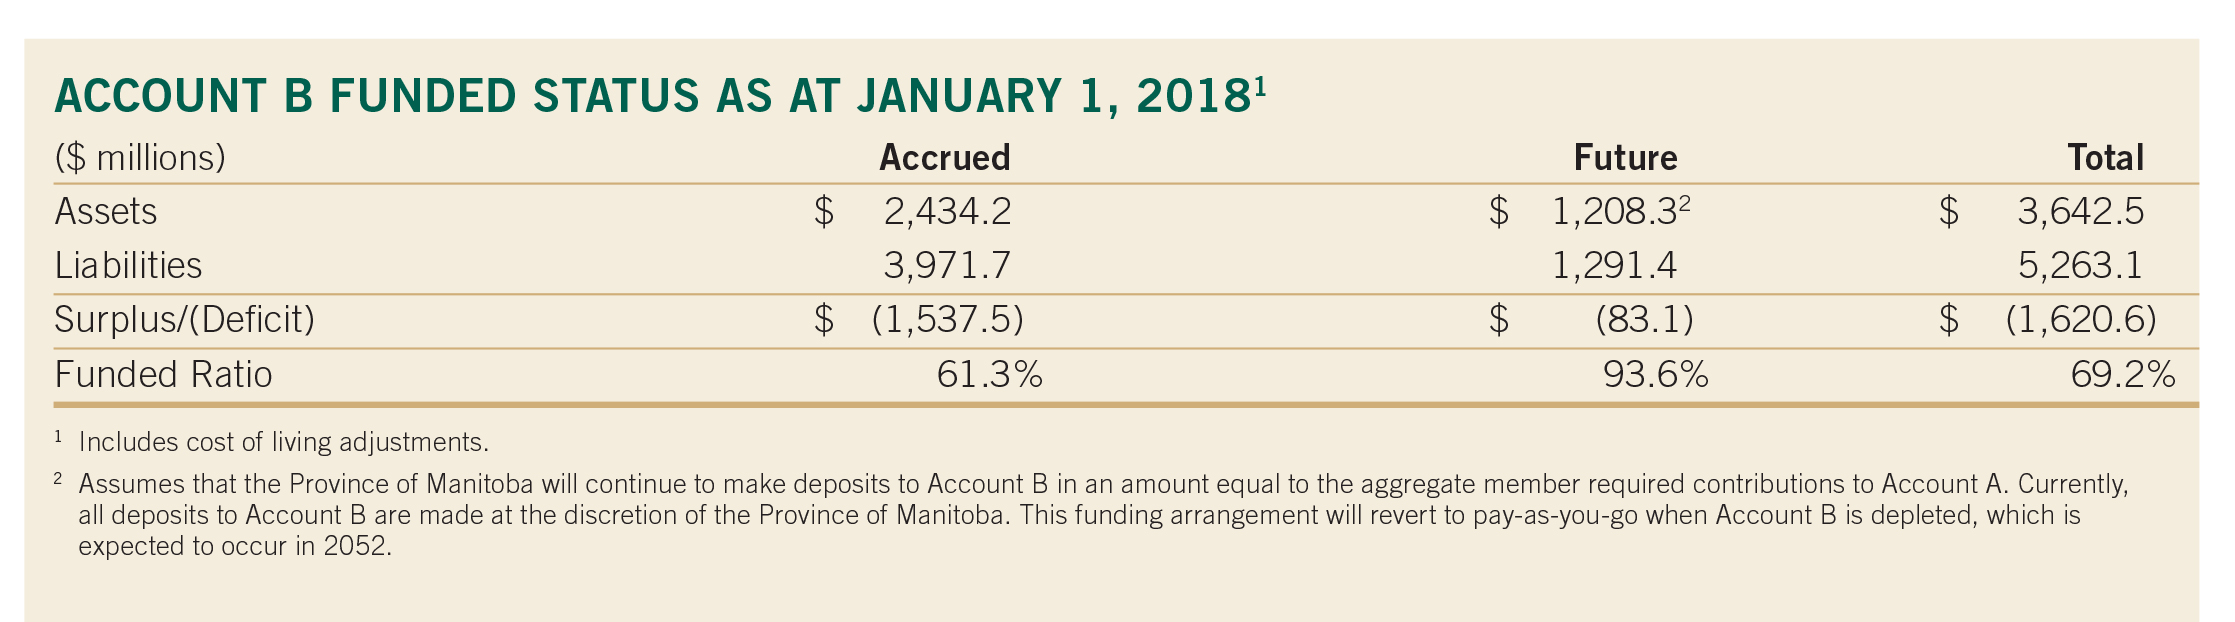 pg 27 Account B Funded Status as at Jan. 1 2018